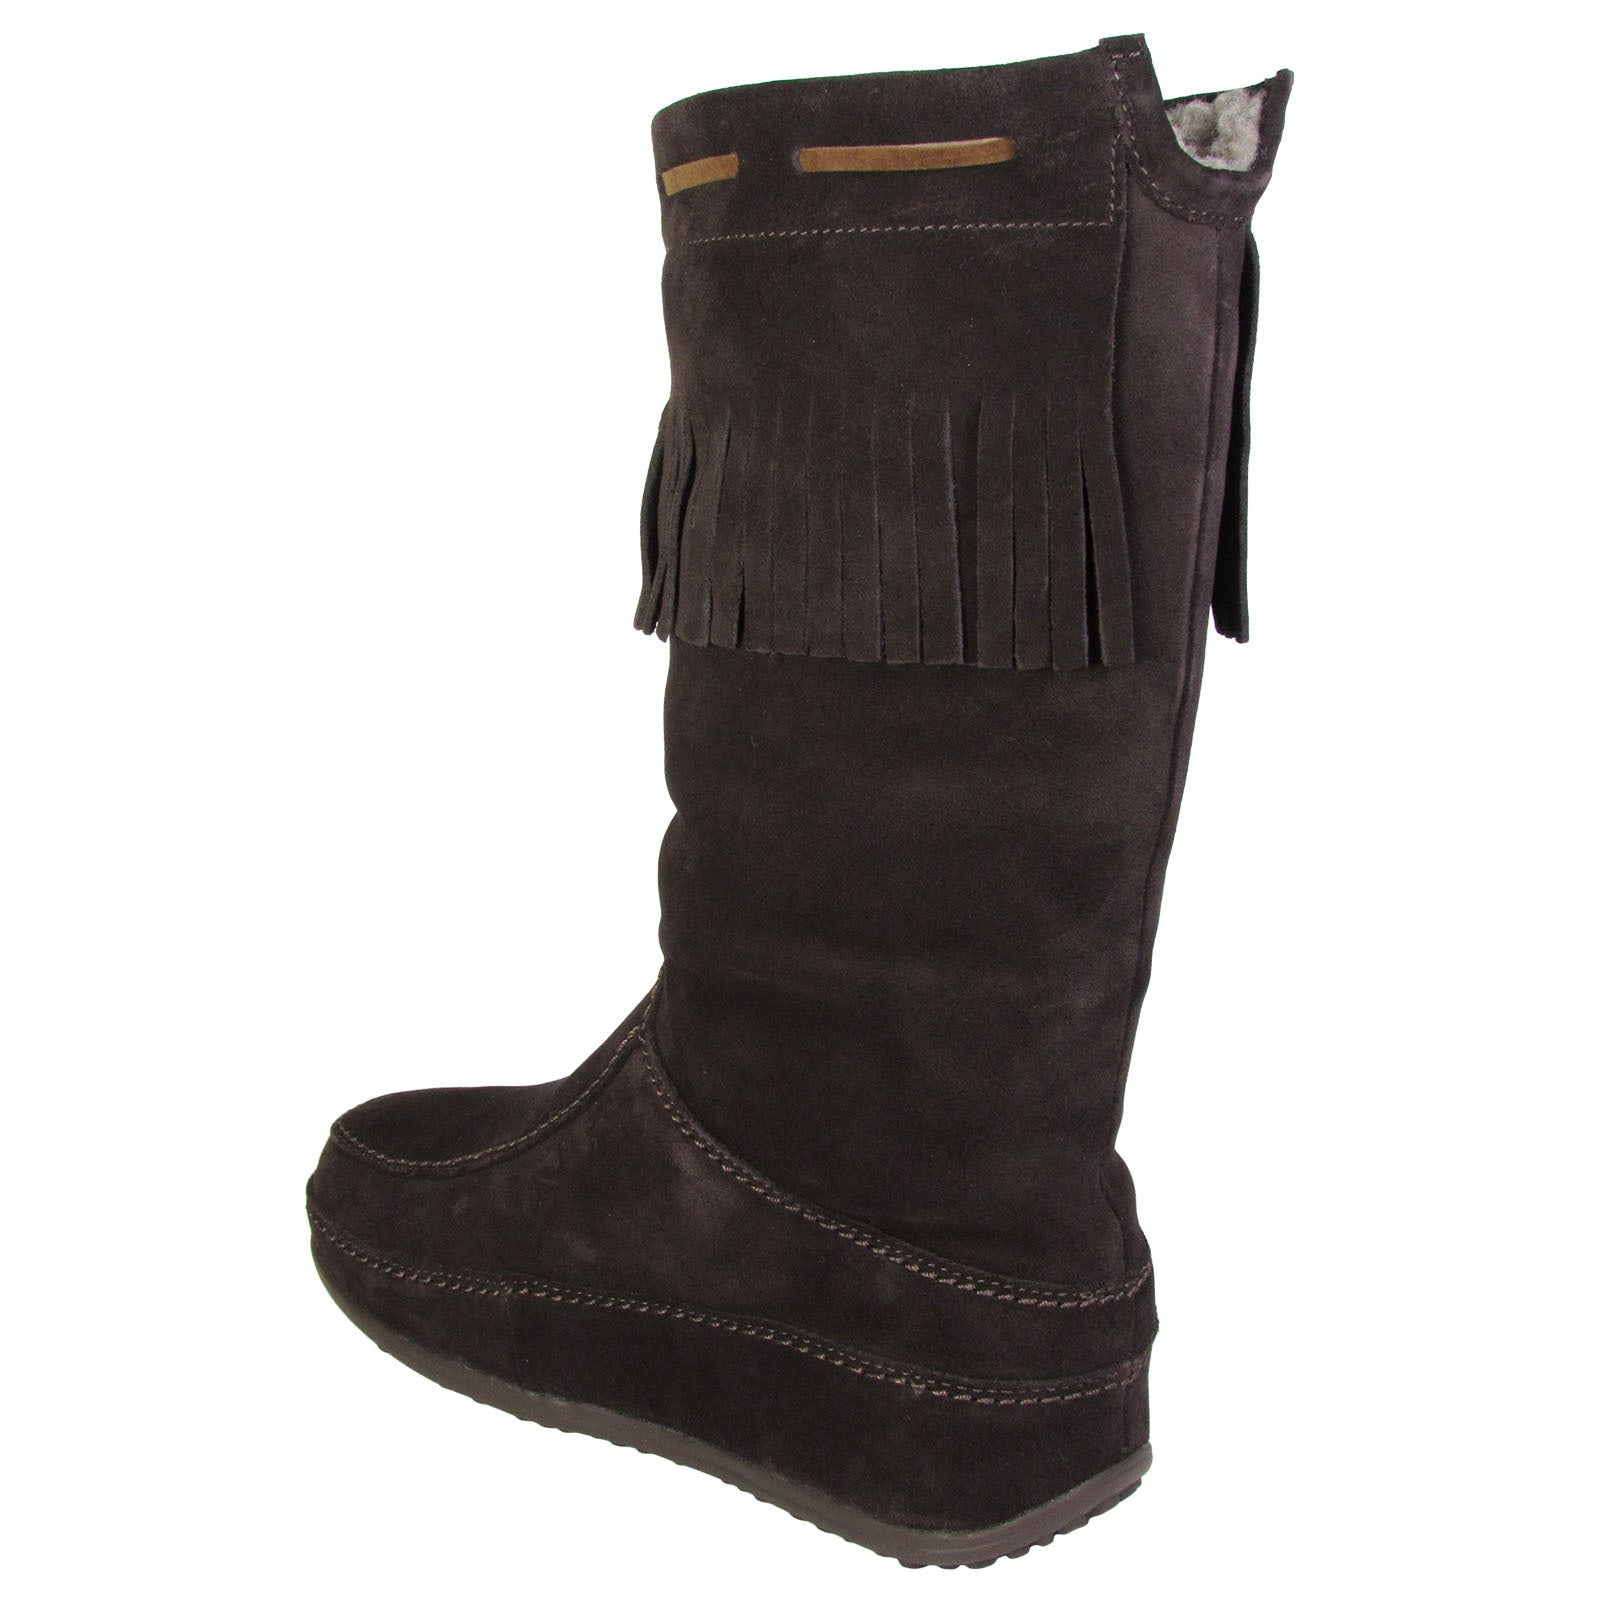 b91dcff126416b Shop Fitflop Womens Superfringe Mukluk Suede Boots - On Sale - Free  Shipping Today - Overstock